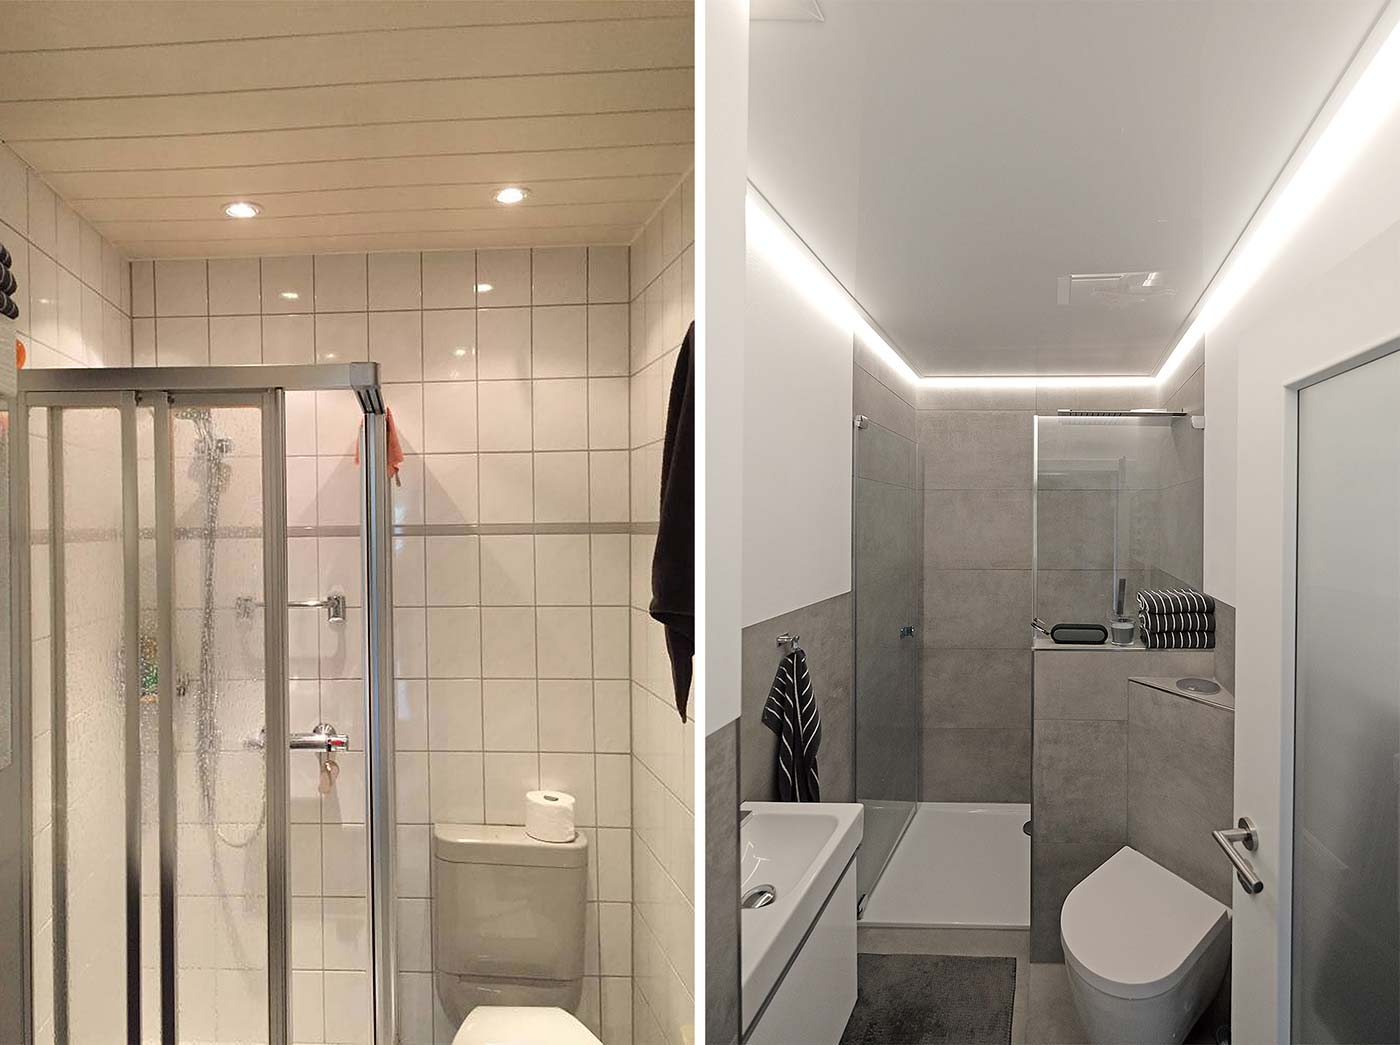 Led Im Bad Decke Led Stripes Im Badezimmer Plameco Decken Est 1982